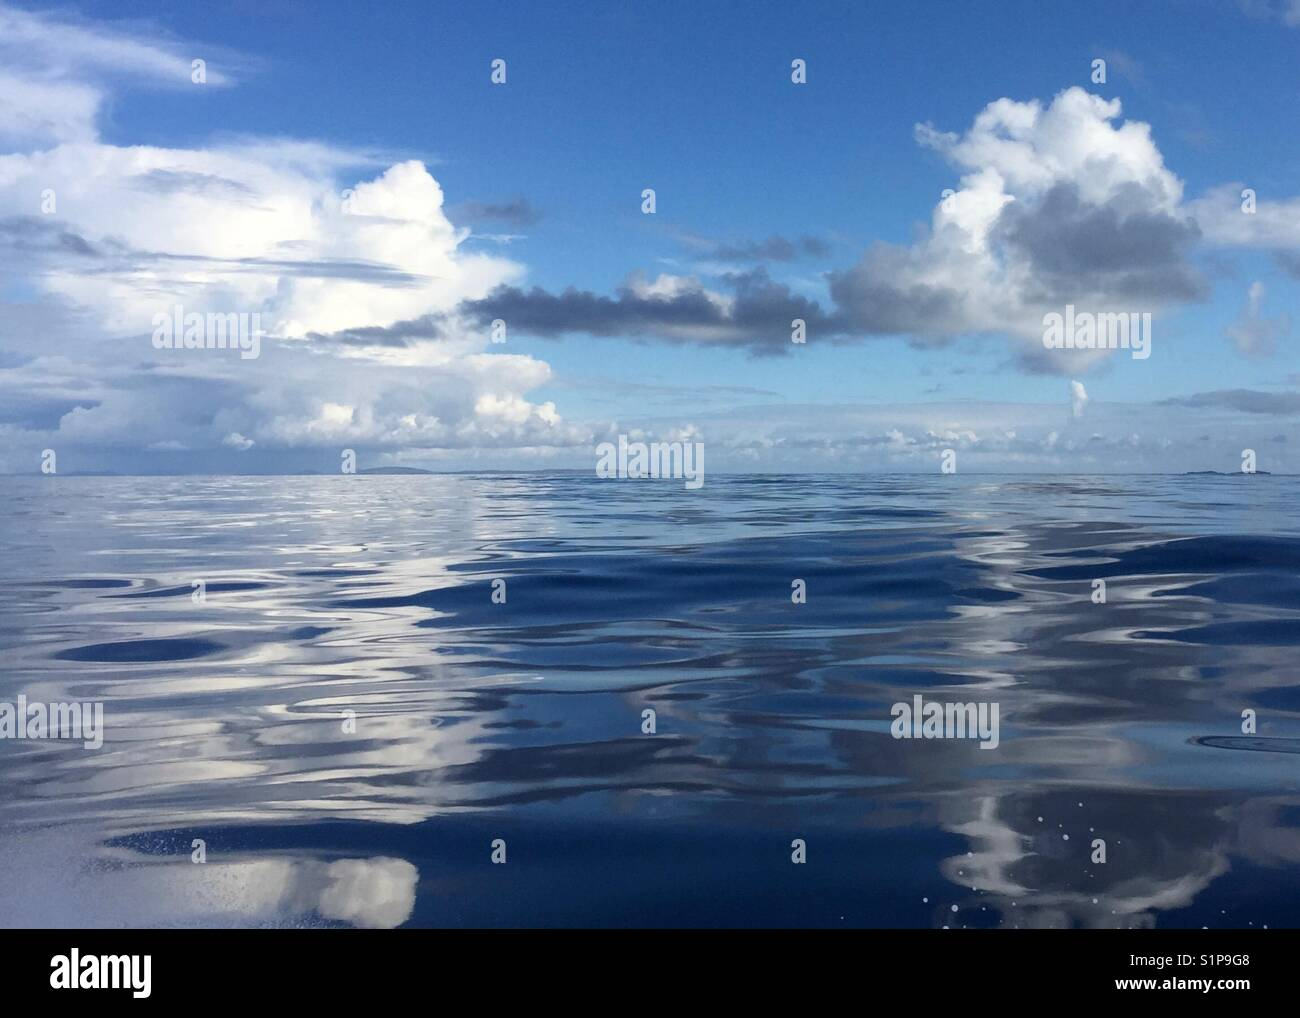 Meanwhile, somewhere in the middle of the North Atlantic... - Stock Image